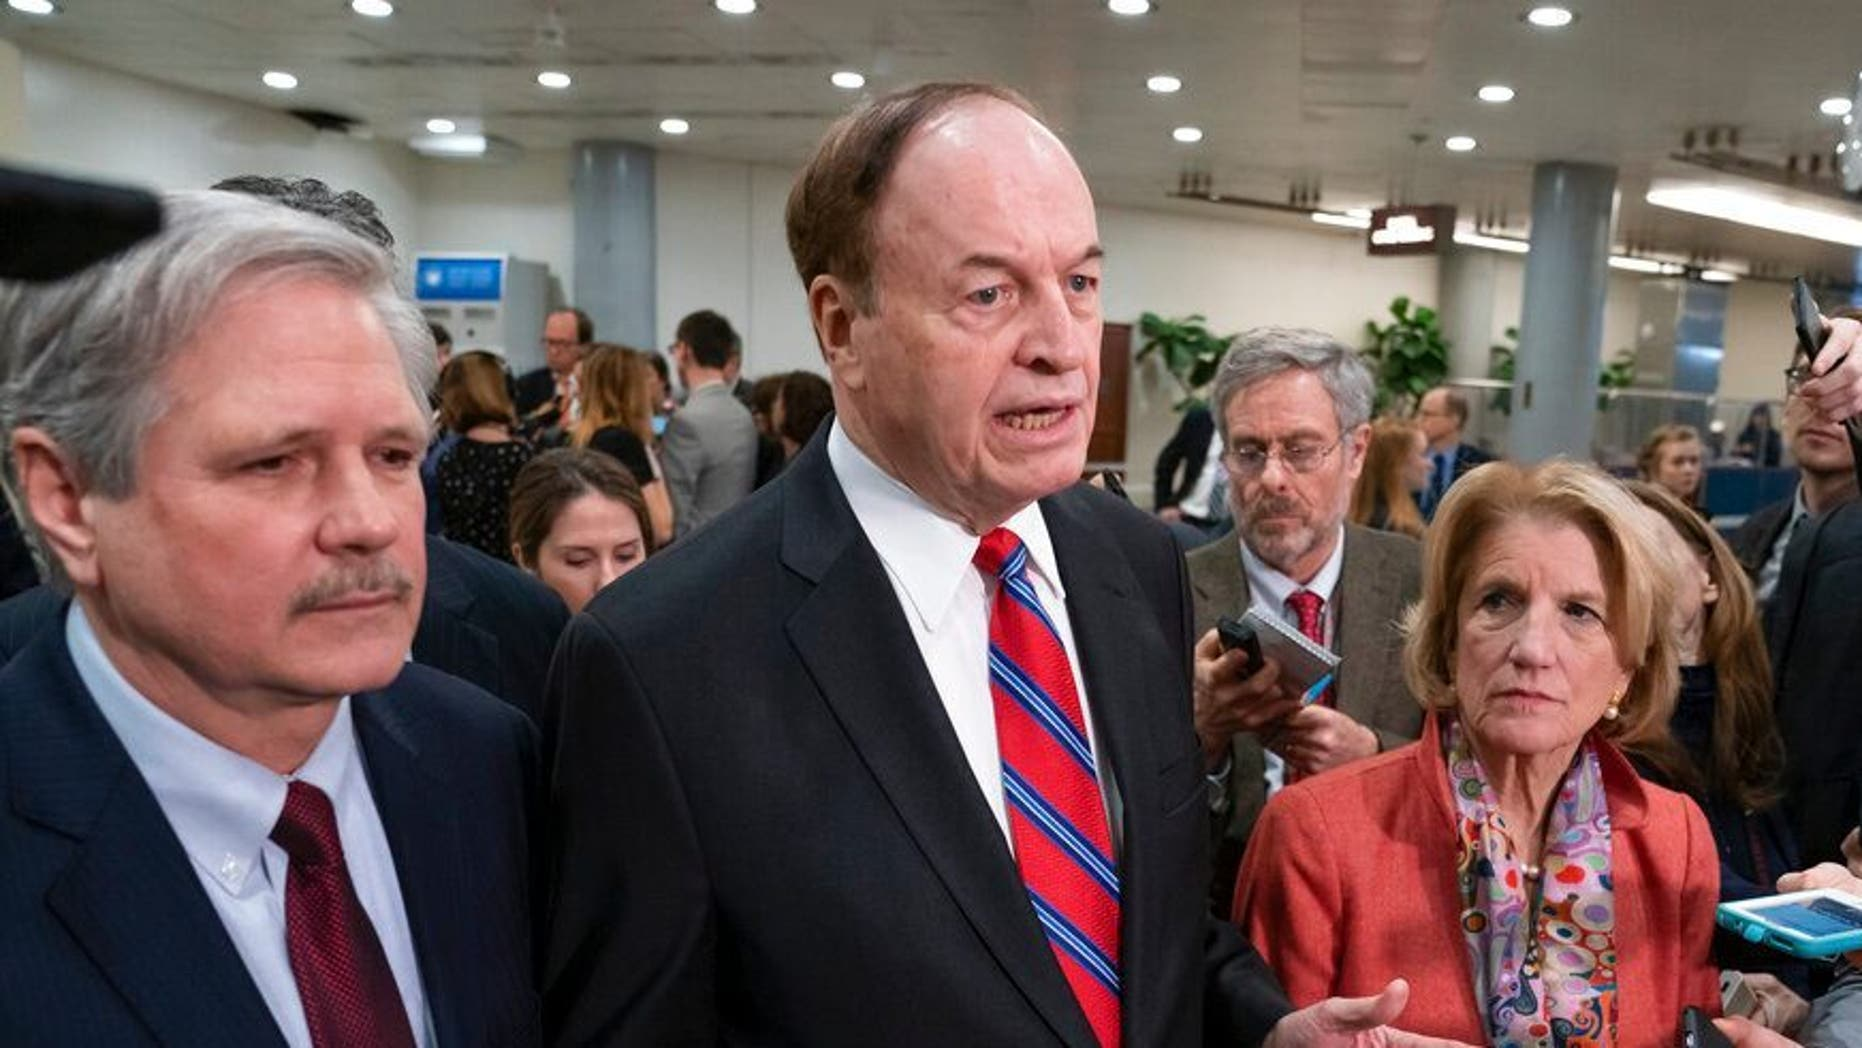 In this Feb. 6, 2019, photo, Sen. Richard Shelby, R-Ala., the top Republican on the bipartisan group bargainers working to craft a border security compromise in hope of avoiding another government shutdown, is joined by Sen. John Hoeven, R-N.D., left, and Sen. Shelley Moore Capito, R-W.Va., right, as they speak with reporters in Washington. (AP Photo/J. Scott Applewhite)<br>